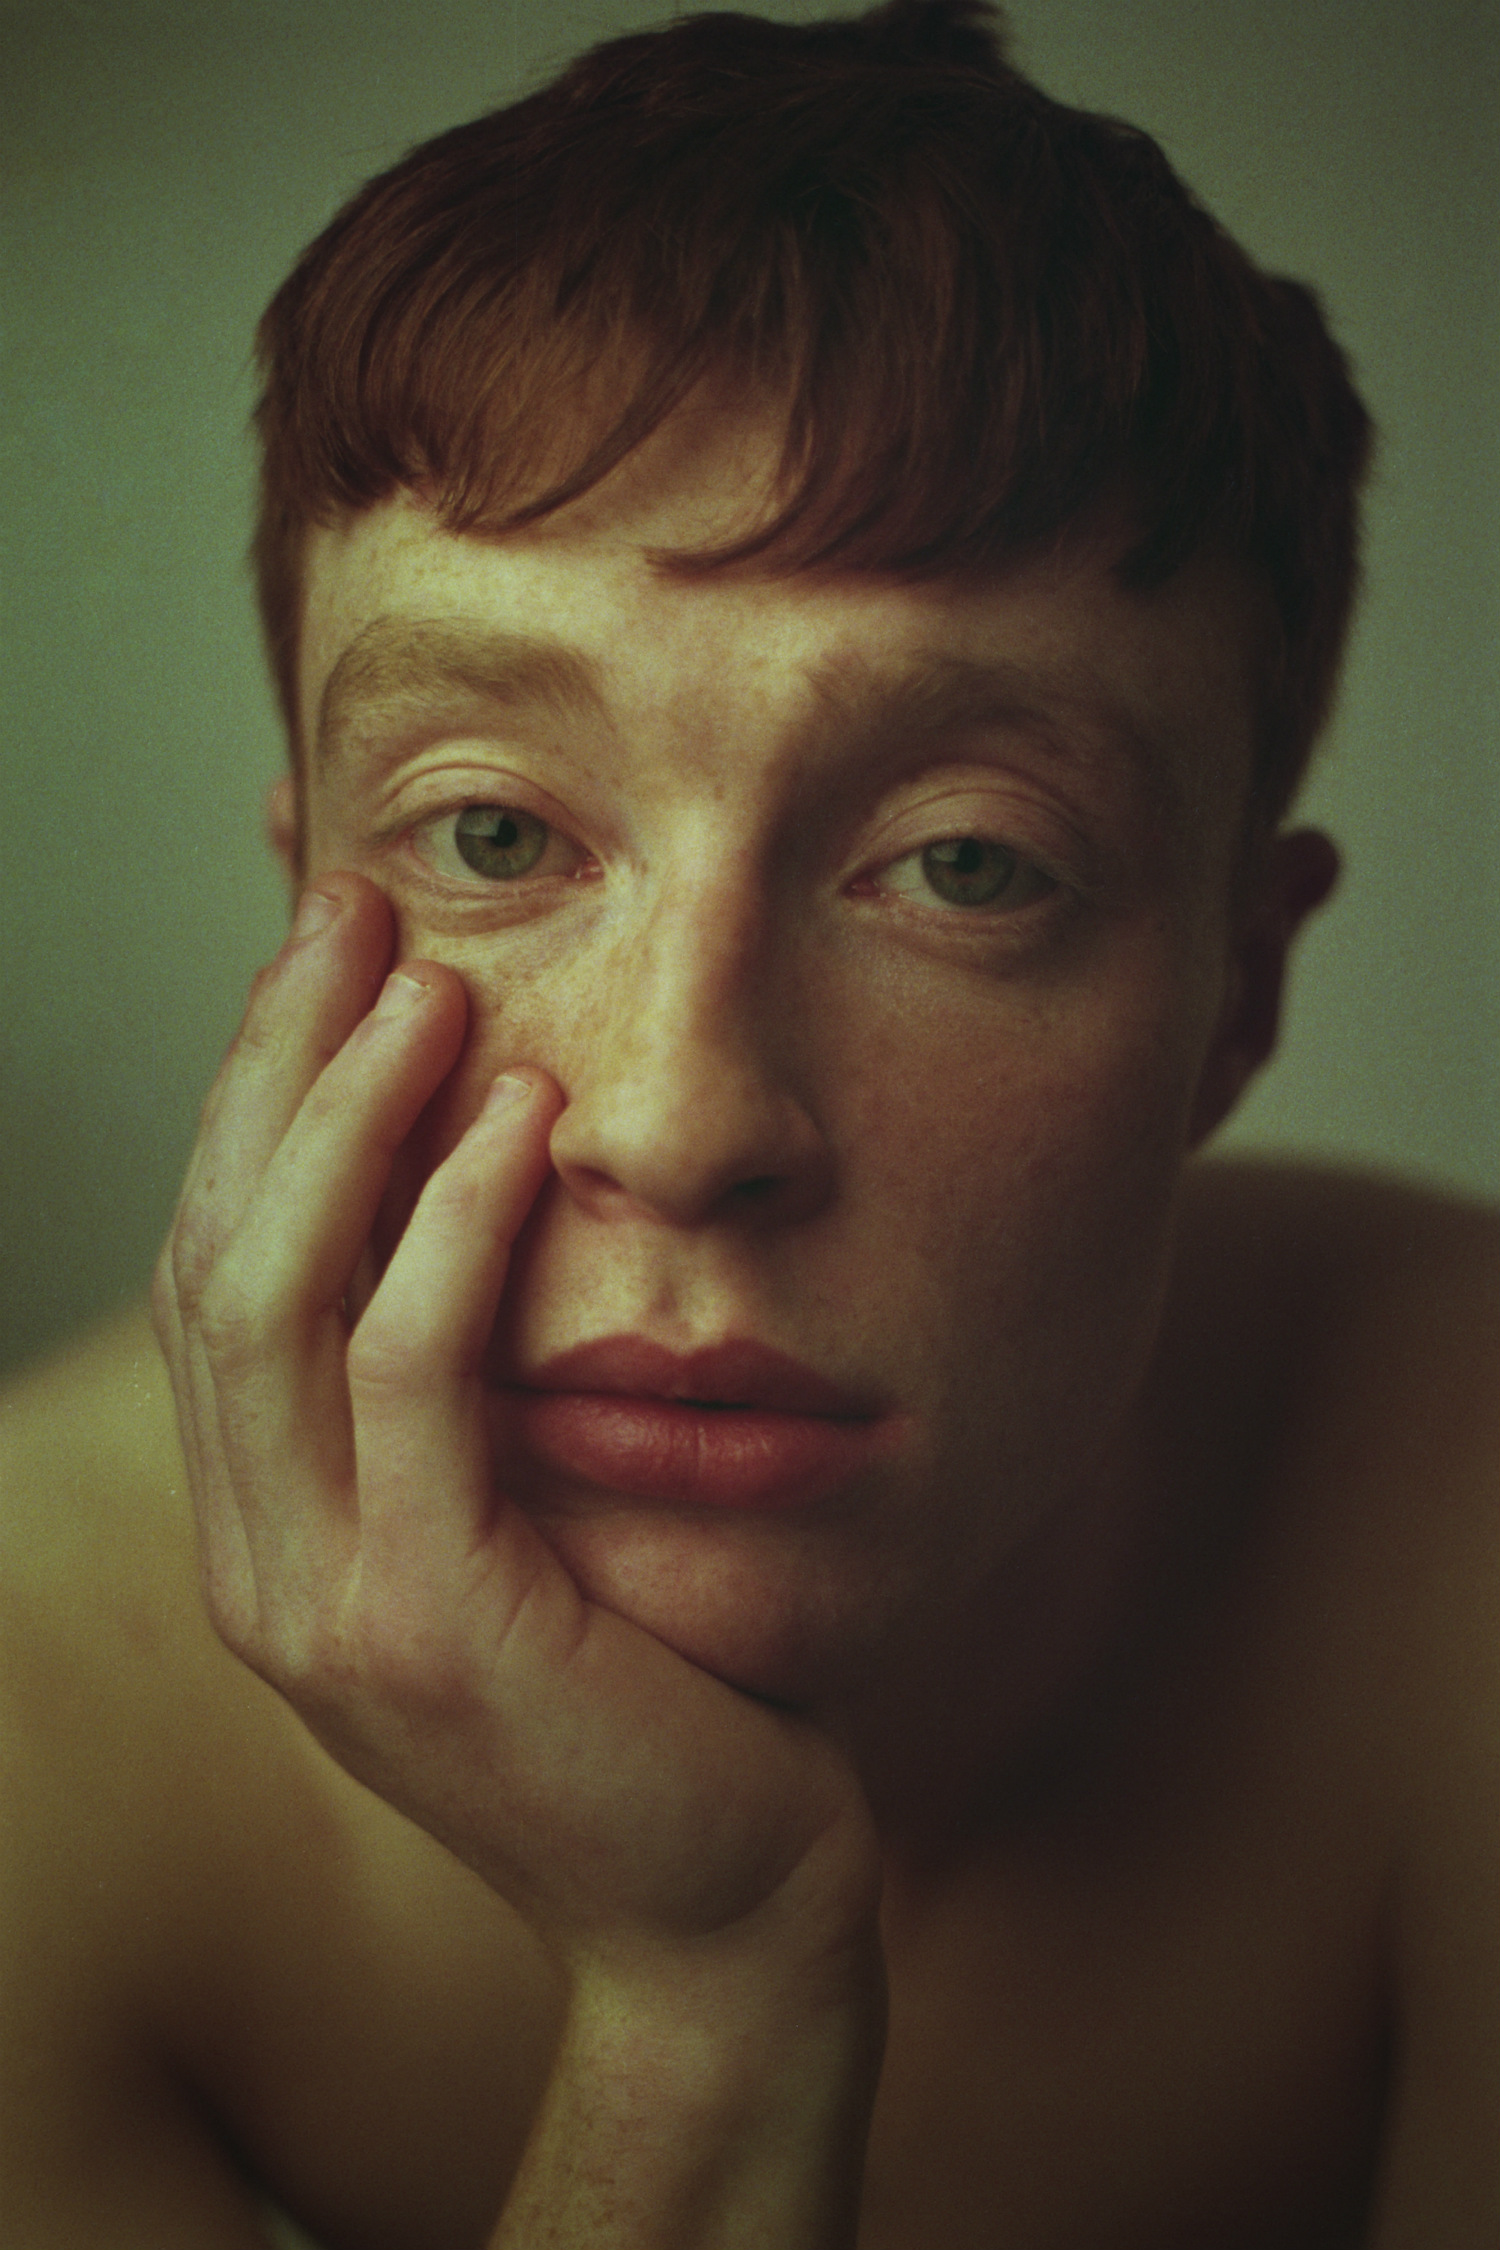 photographers meaning of masculinity interview exhibition